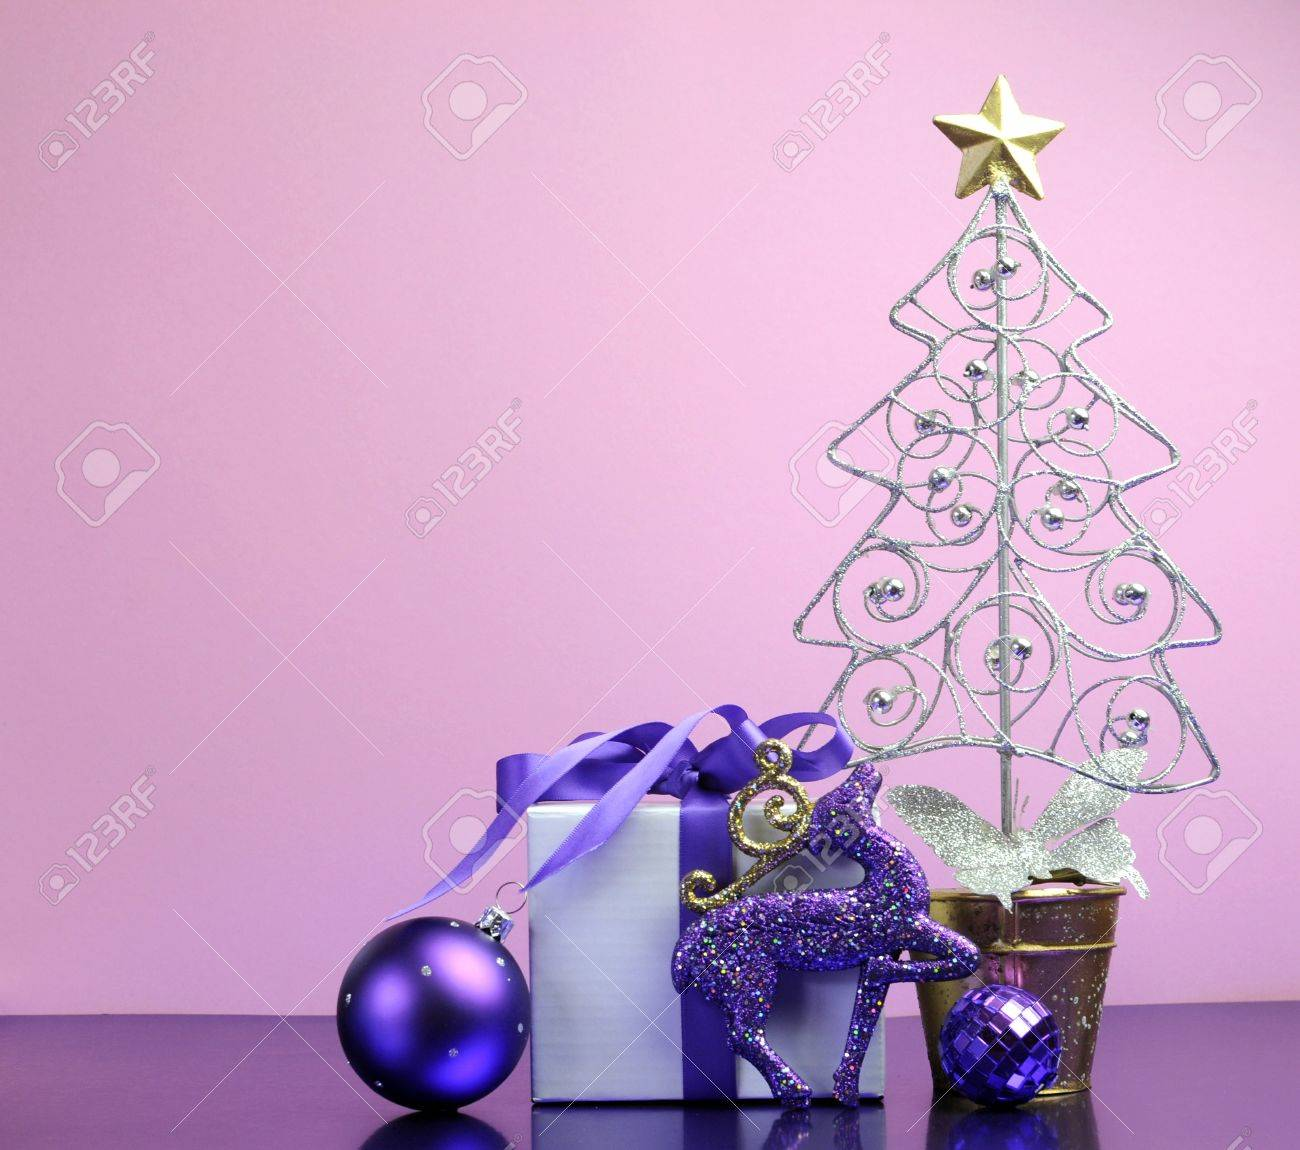 Purple Theme Christmas Tree Gift And Bauble Decorations Festive Stock Photo Picture And Royalty Free Image Image 17759089